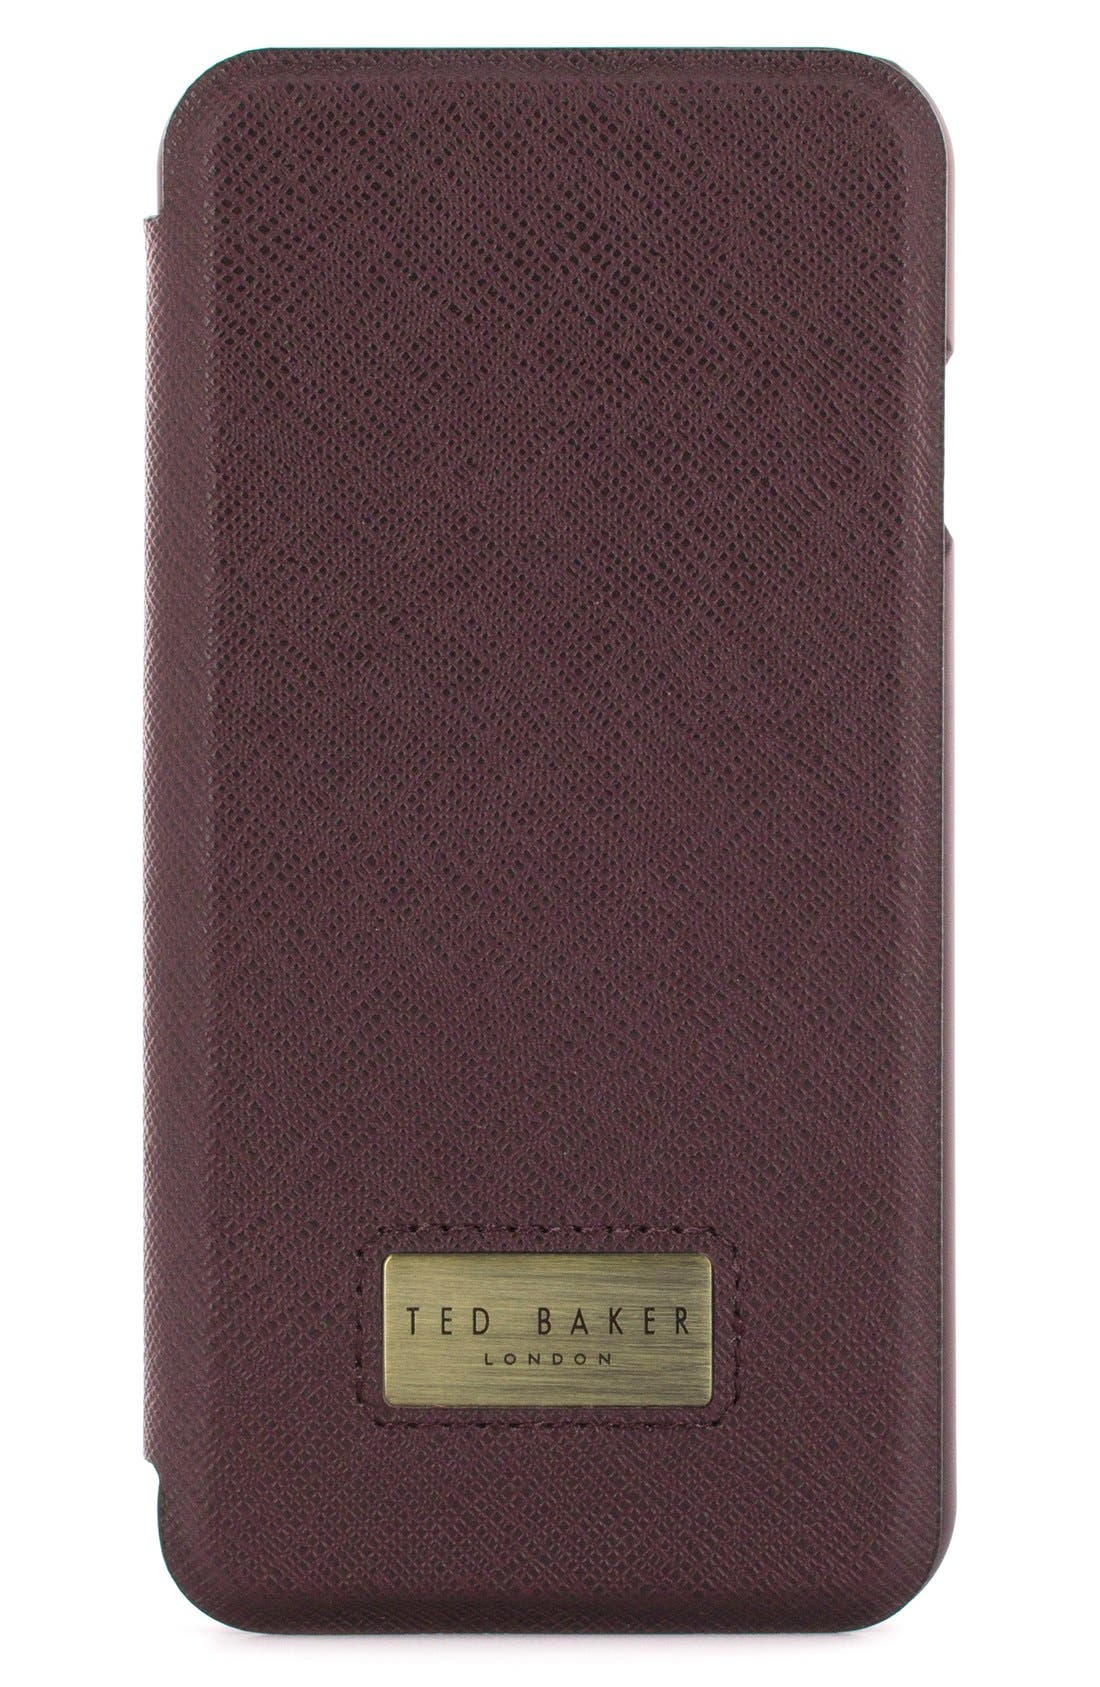 Ted Baker London Aries iPhone 6/6s/7/8 Folio